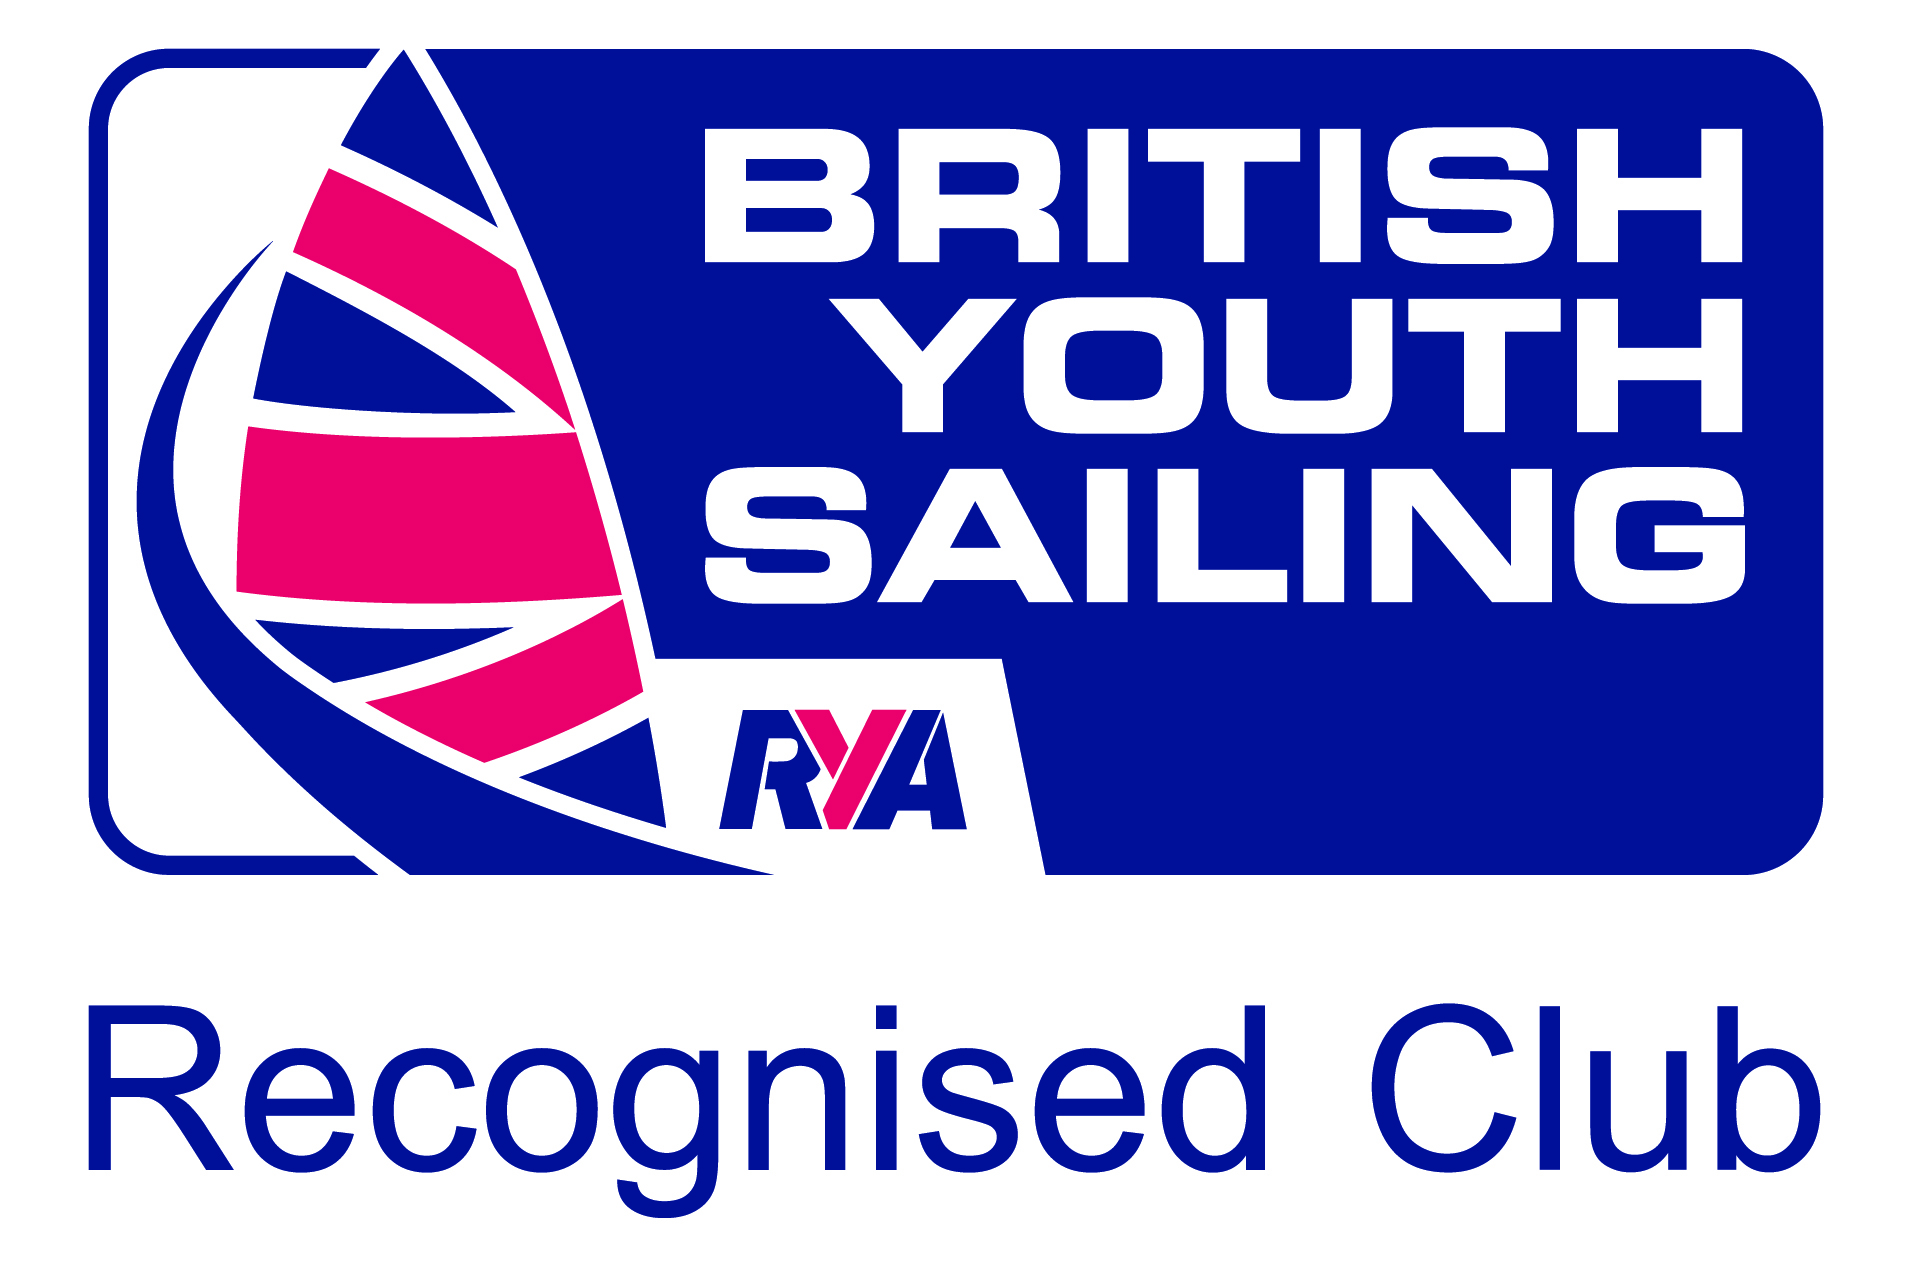 NEW British Youth Sailing Recognised Club.jpg